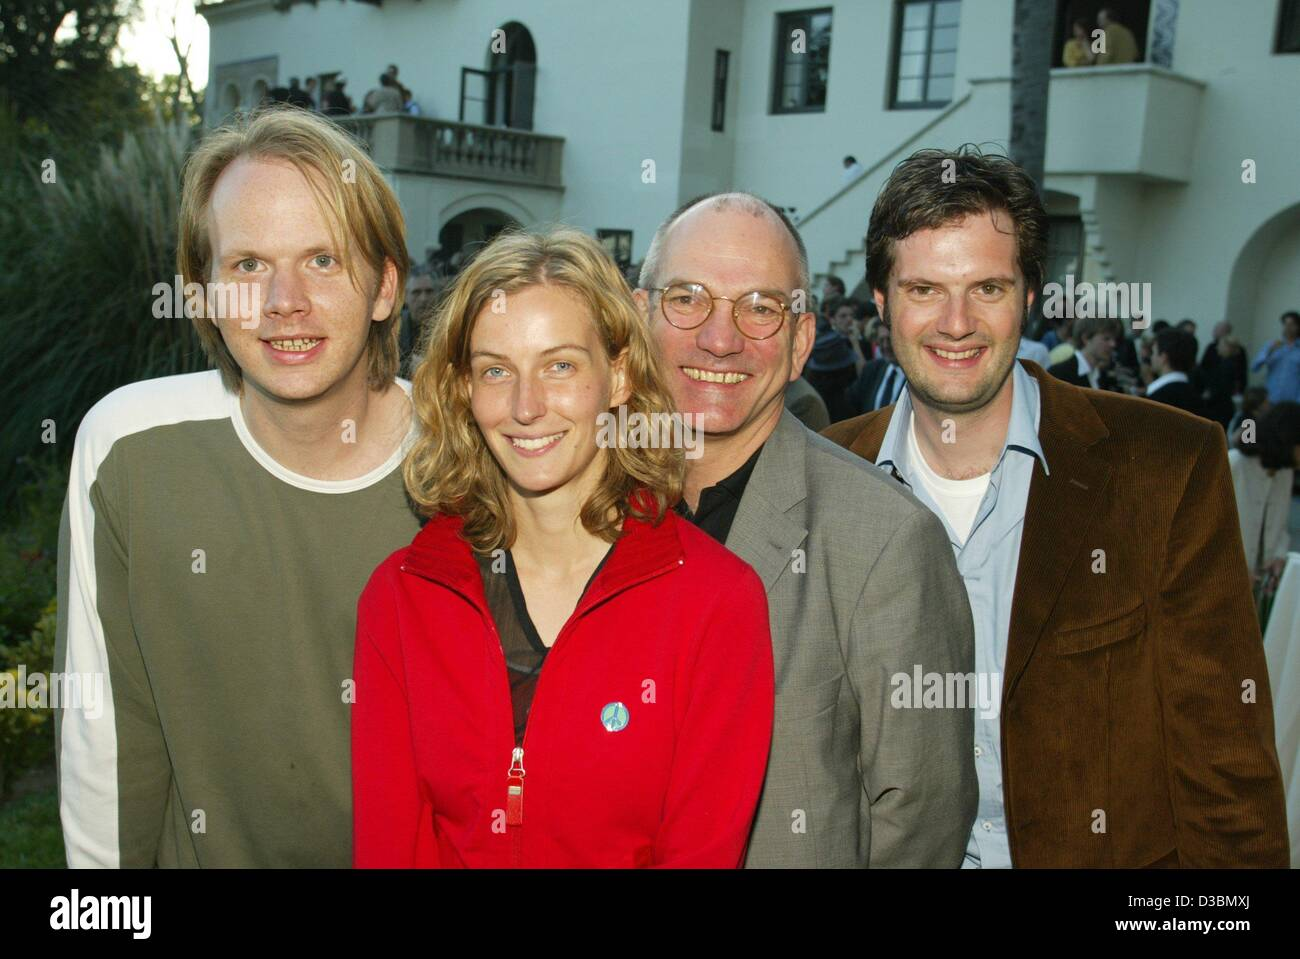 (dpa) - The German film students Chris Steuner (L), Heidi Luettlinger (direction) and Georg Gruber (R, producer) - Stock Image